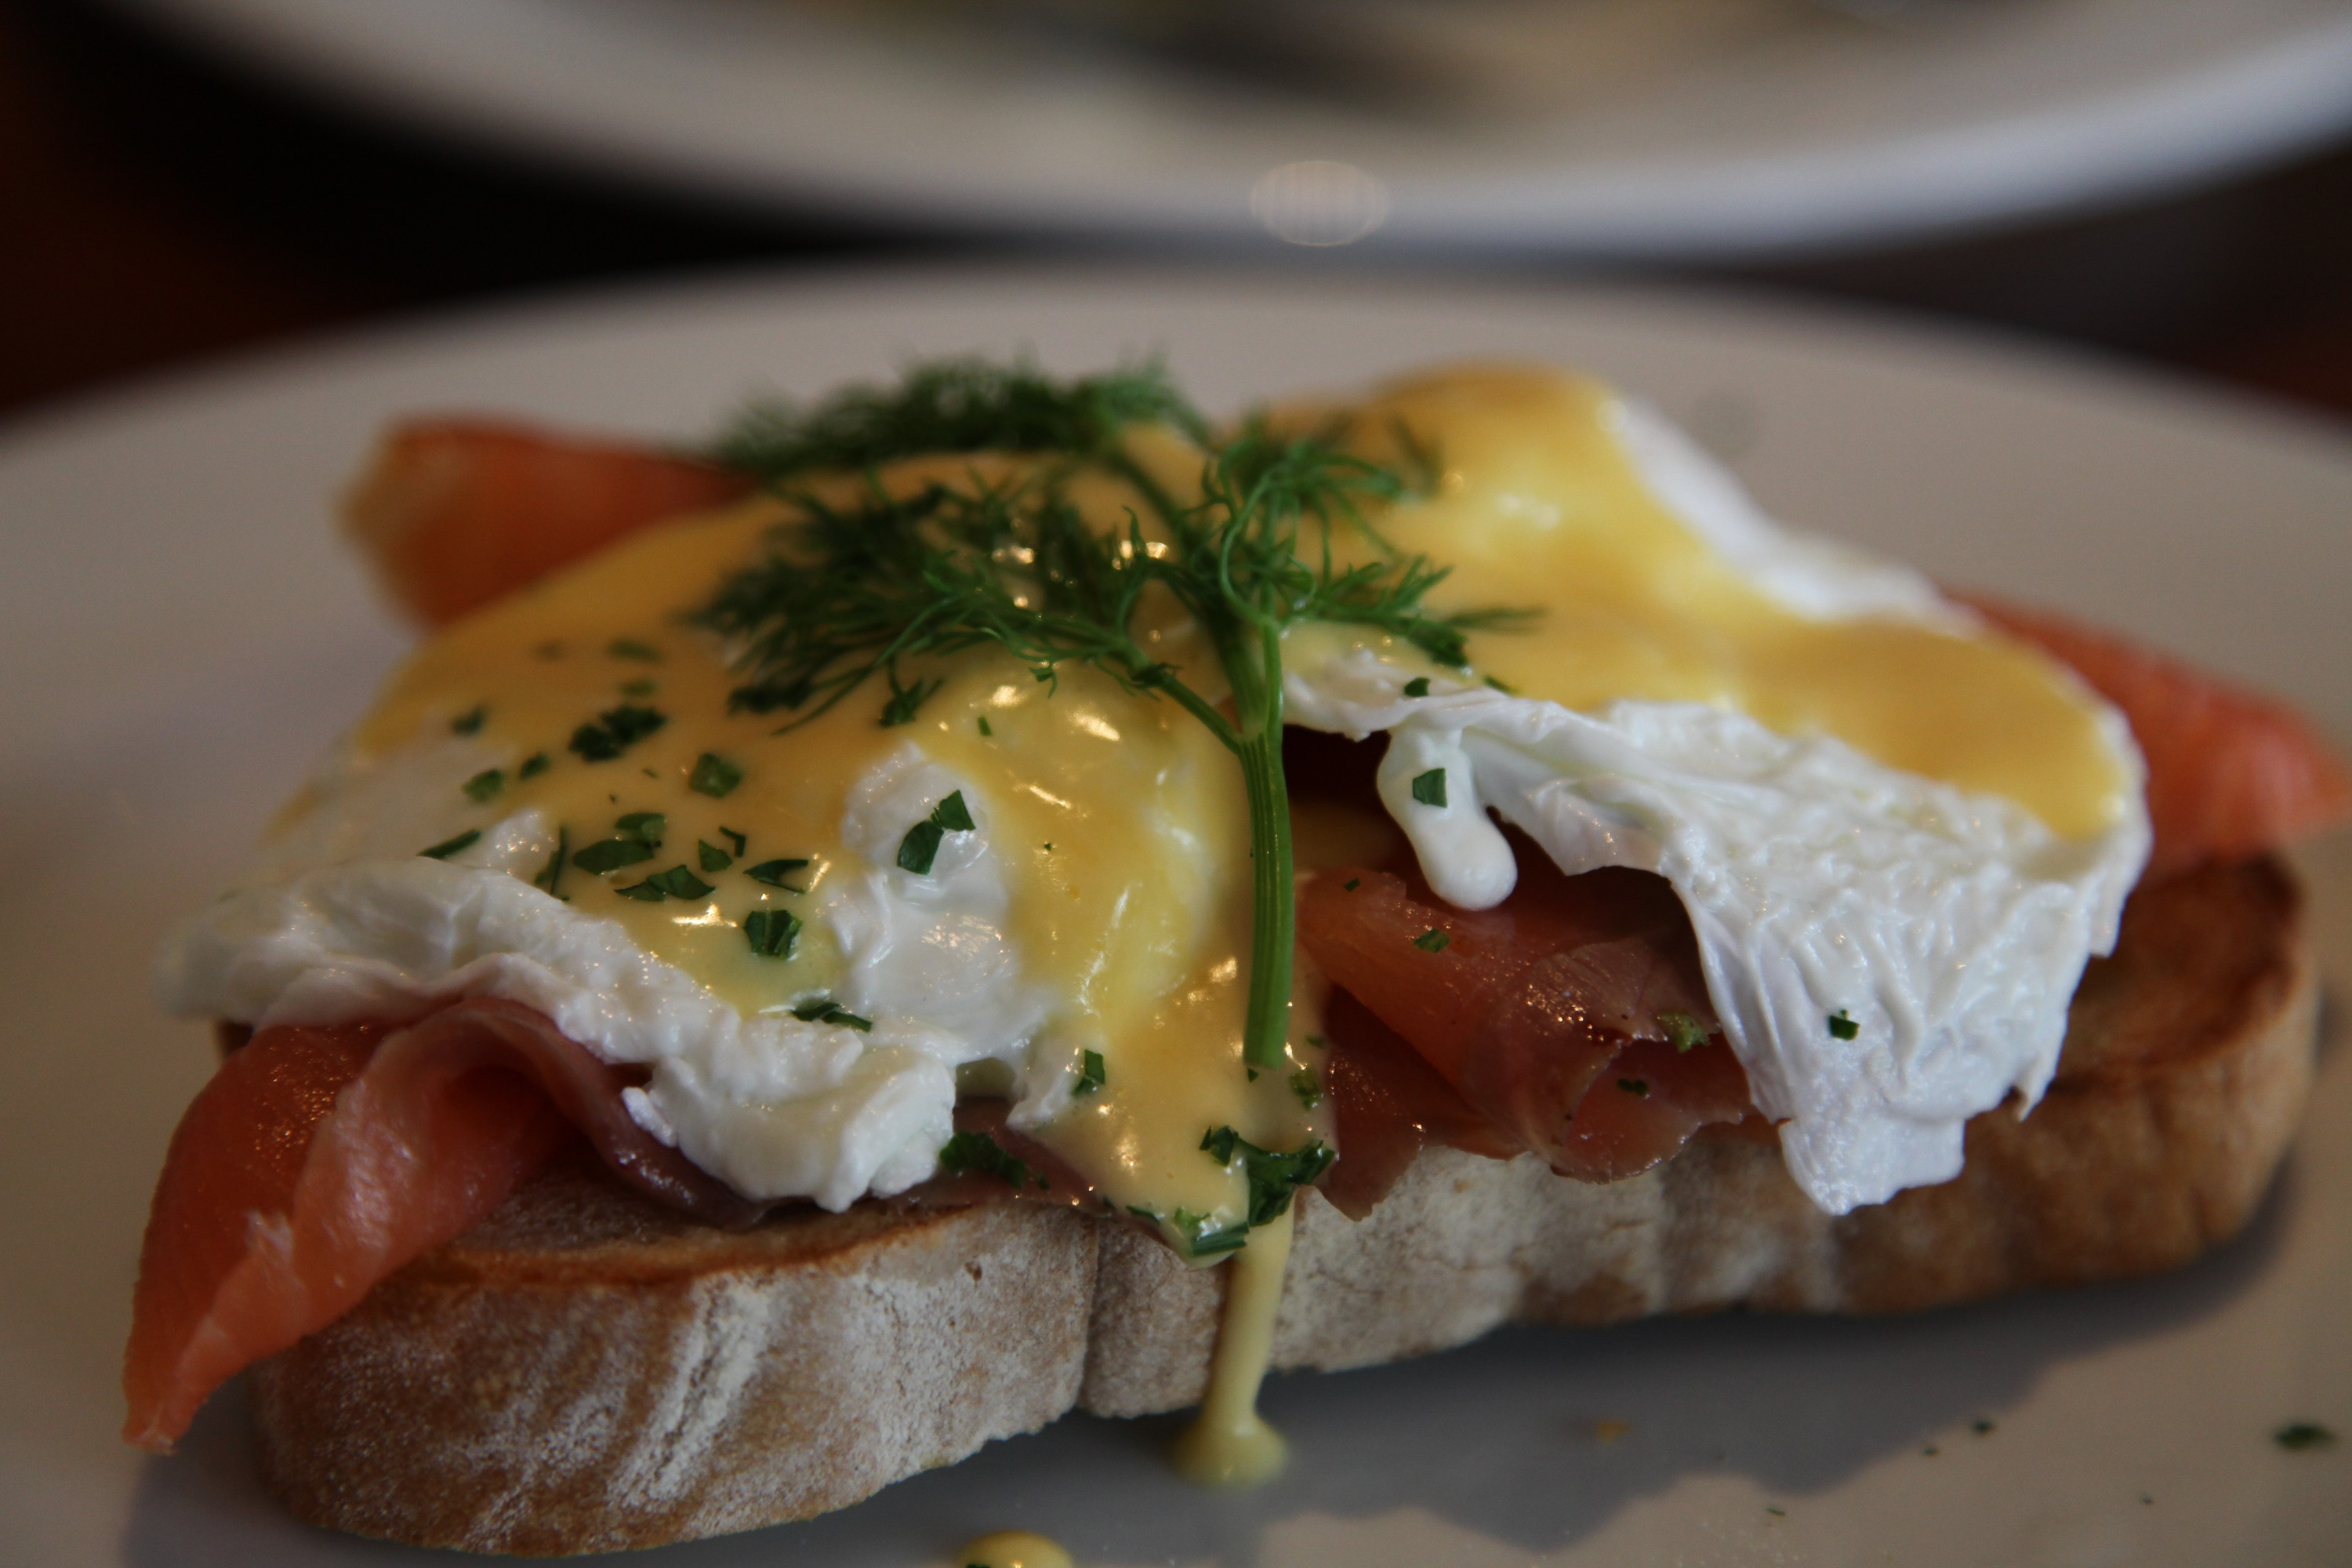 File:Eggs-Benedict-With-Smoked-Salmon-2010.jpg - Wikimedia Commons